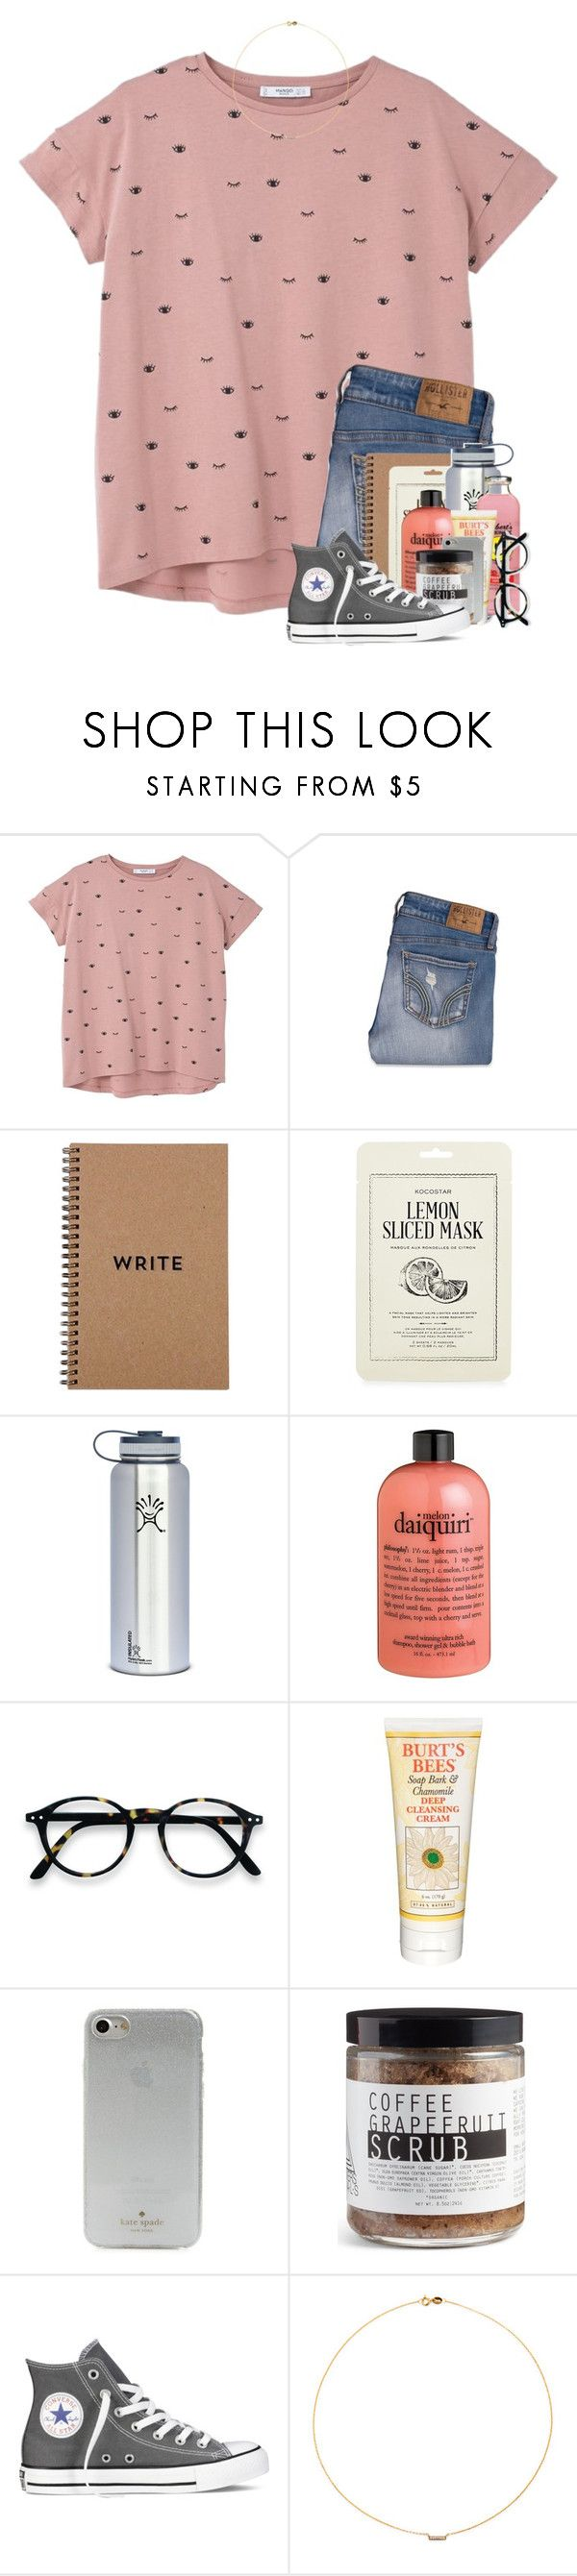 """""""Cherish"""" by lanegrahamm ❤ liked on Polyvore featuring MANGO, Hollister Co., Brika, Kocostar, Hydro Flask, philosophy, Burt's Bees, Kate Spade, Moon Rivers Naturals and Converse"""